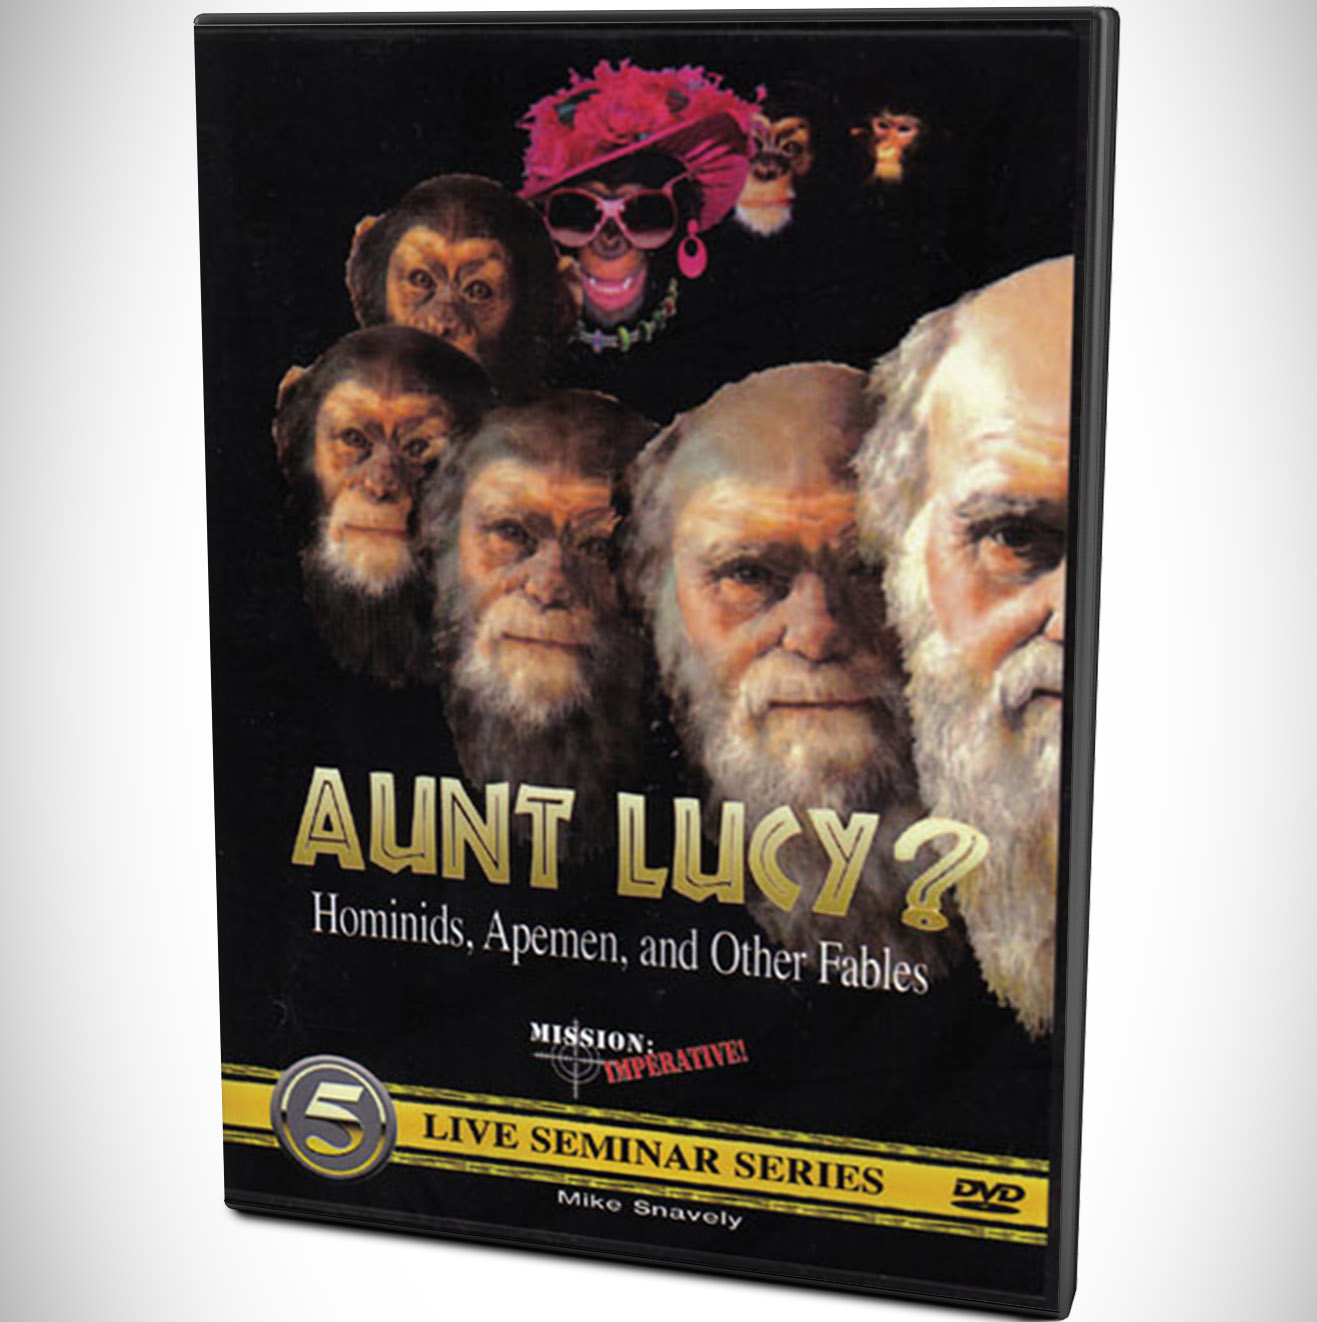 Aunt Lucy? DVD